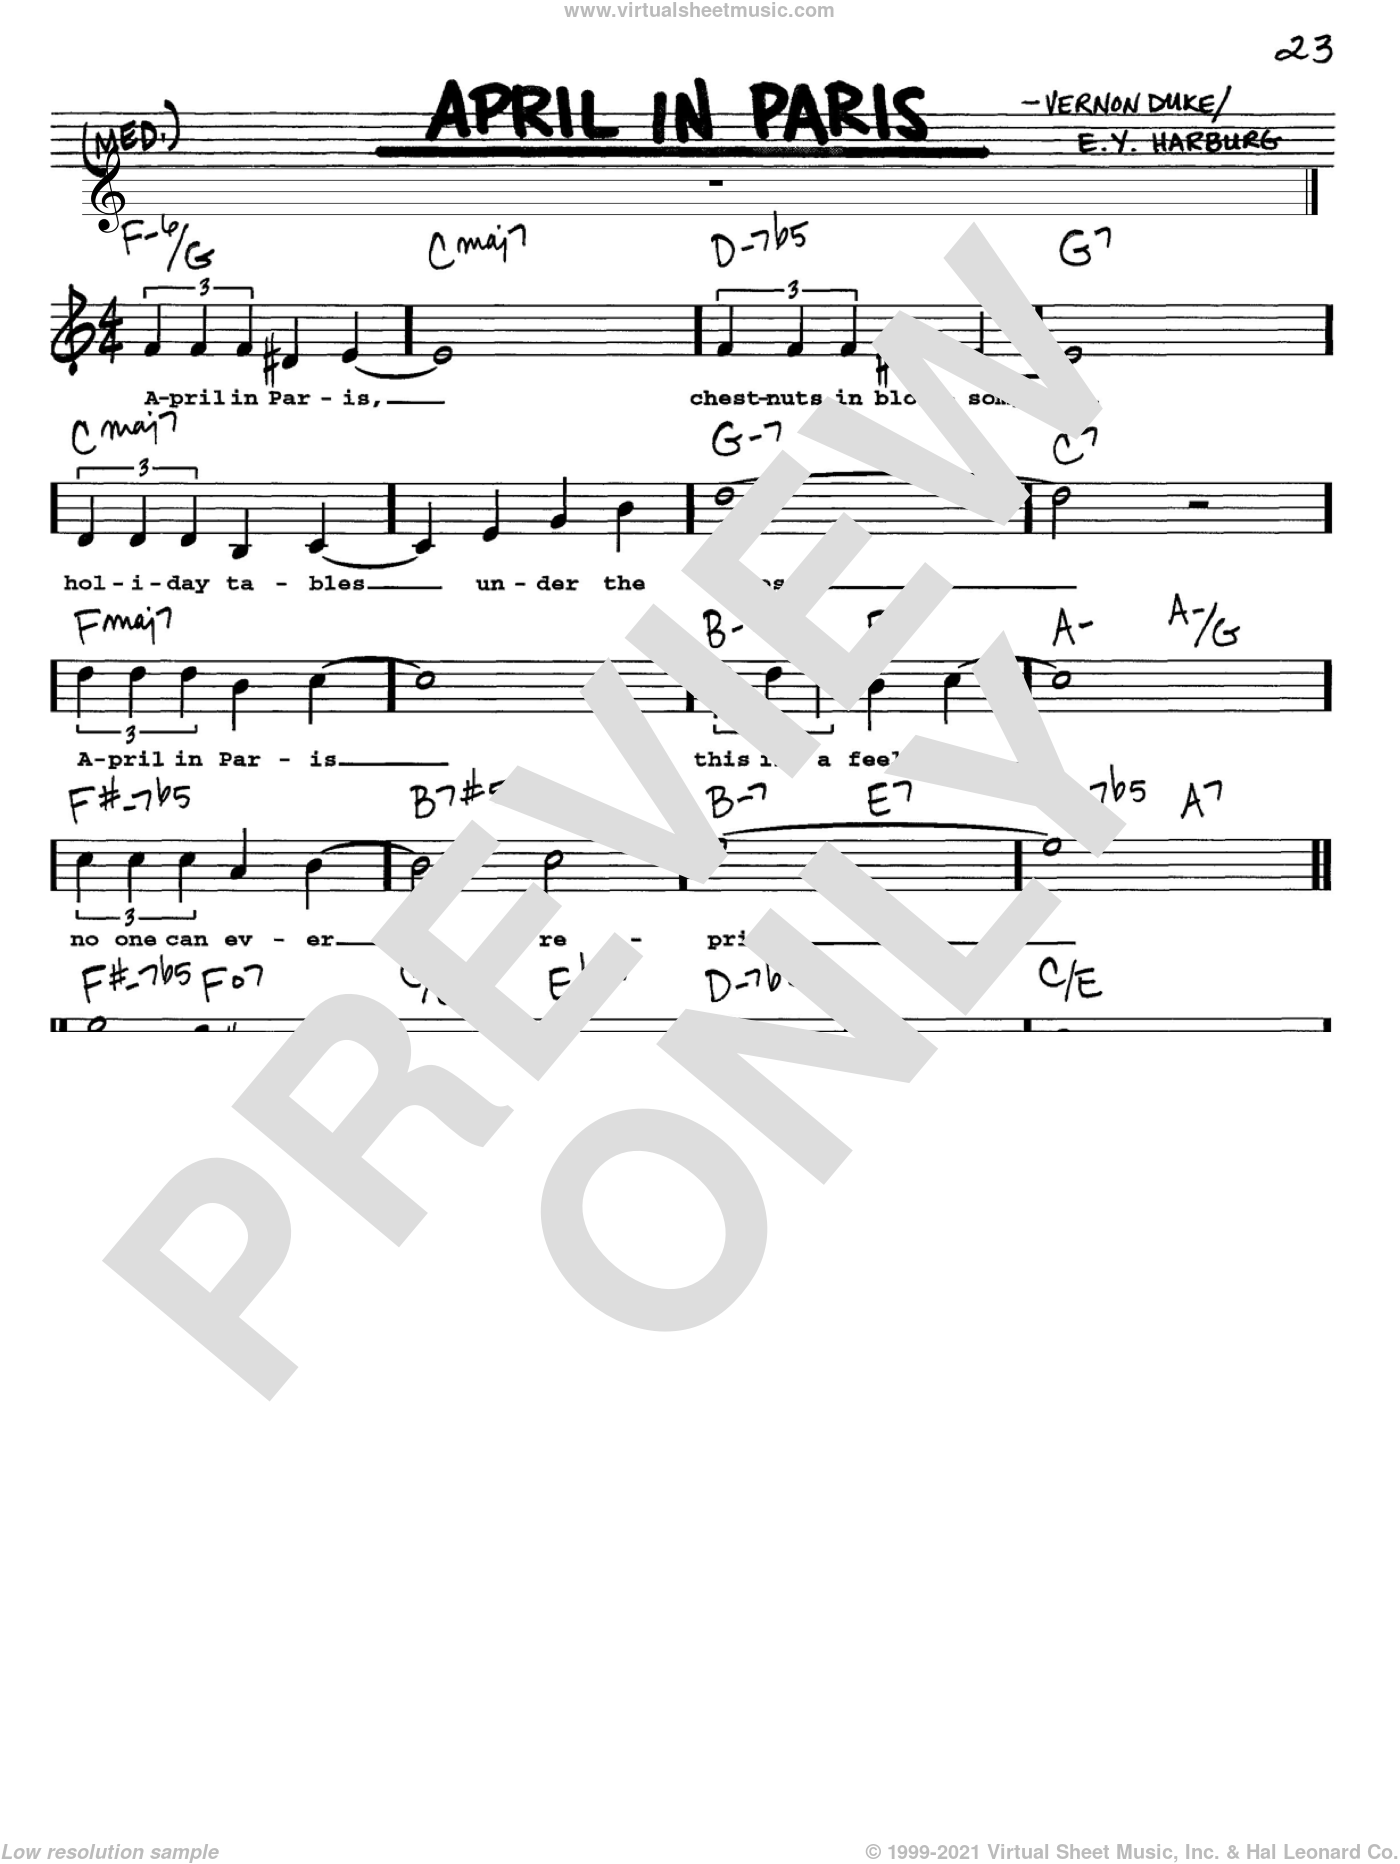 April In Paris sheet music for voice and other instruments (Vocal Volume 1) by E.Y. Harburg, Count Basie and Vernon Duke, intermediate. Score Image Preview.